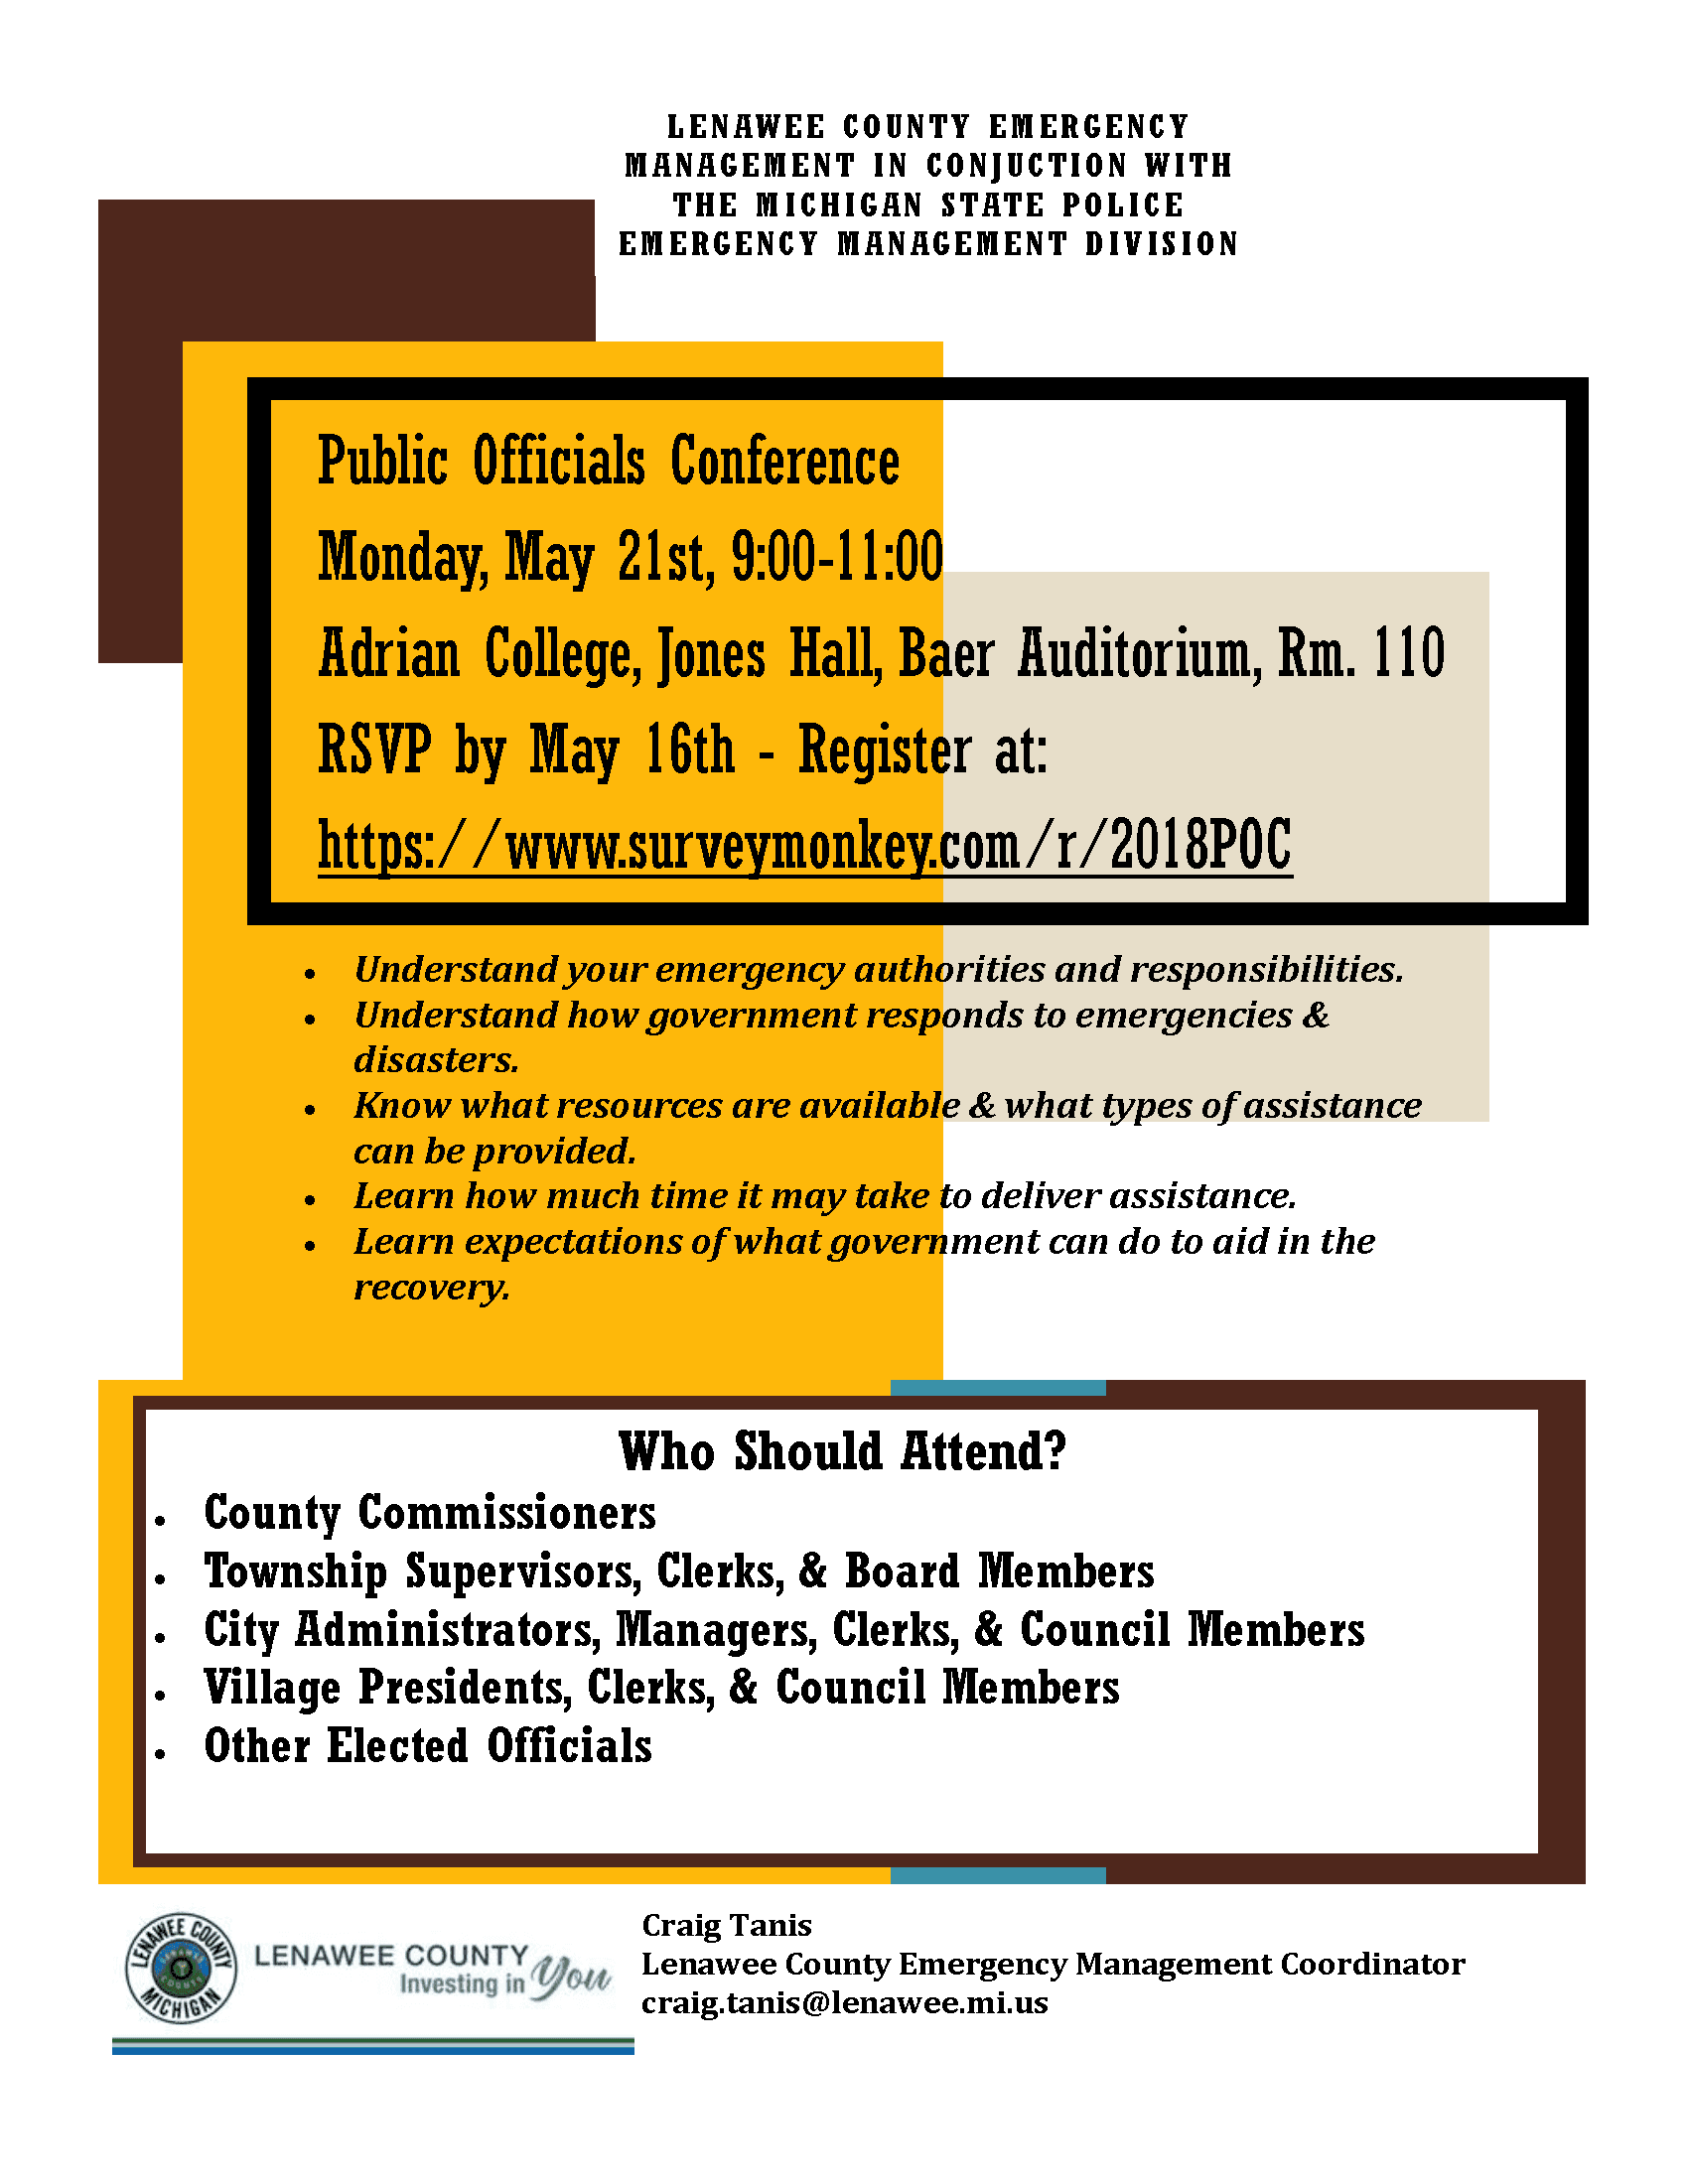 Public Officials Conference Flyer - 5.21.18